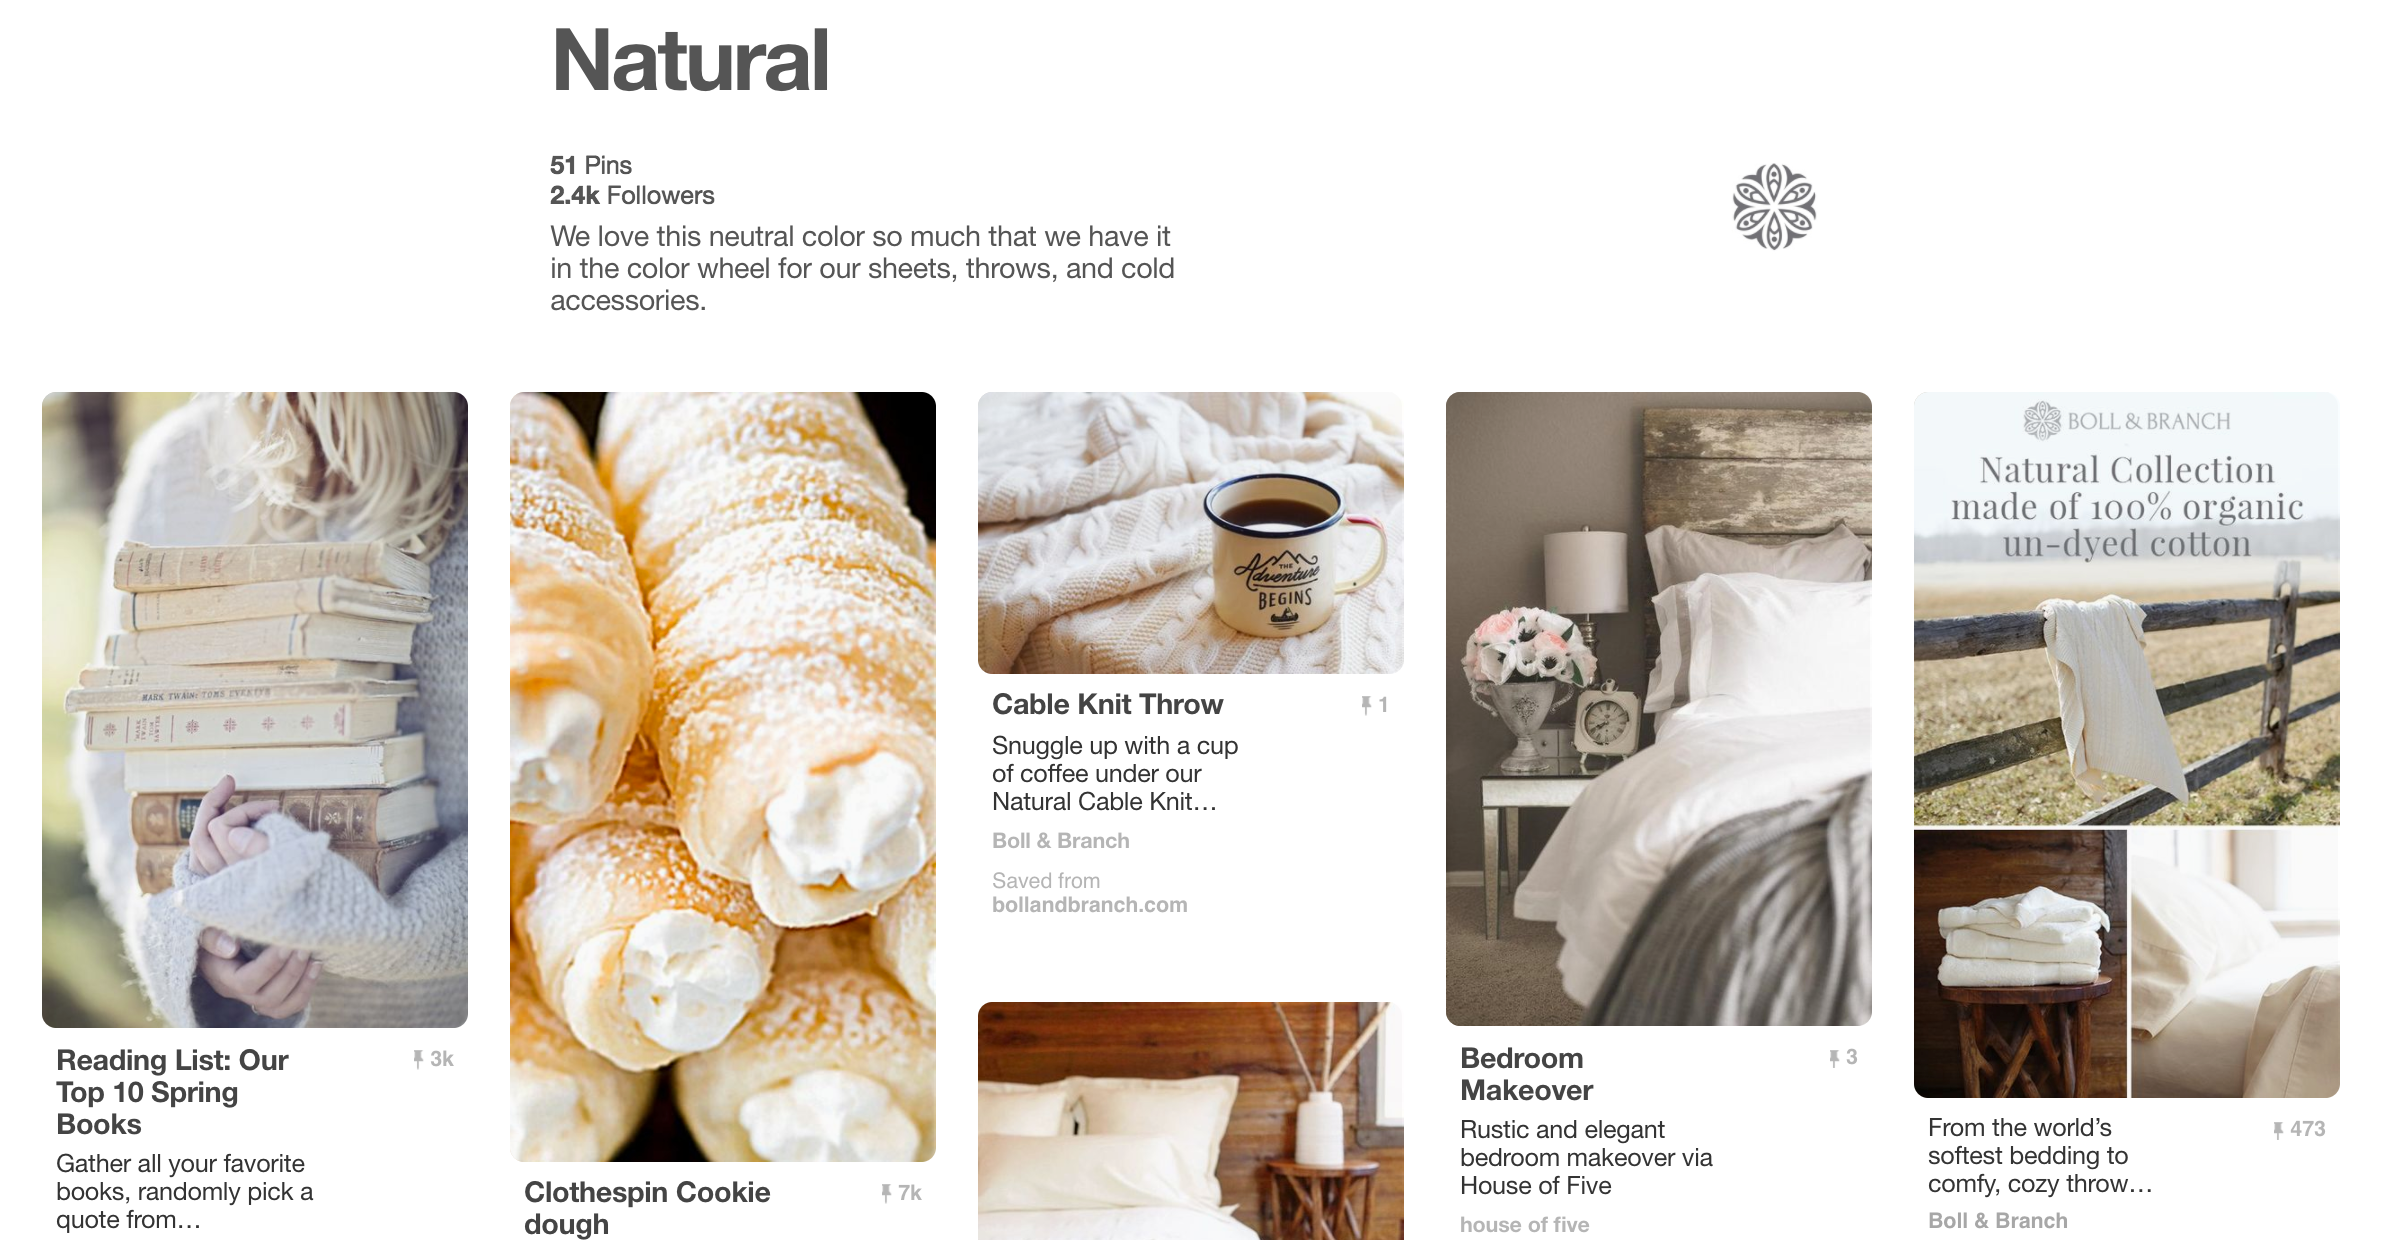 boll and branch natural pinterest board